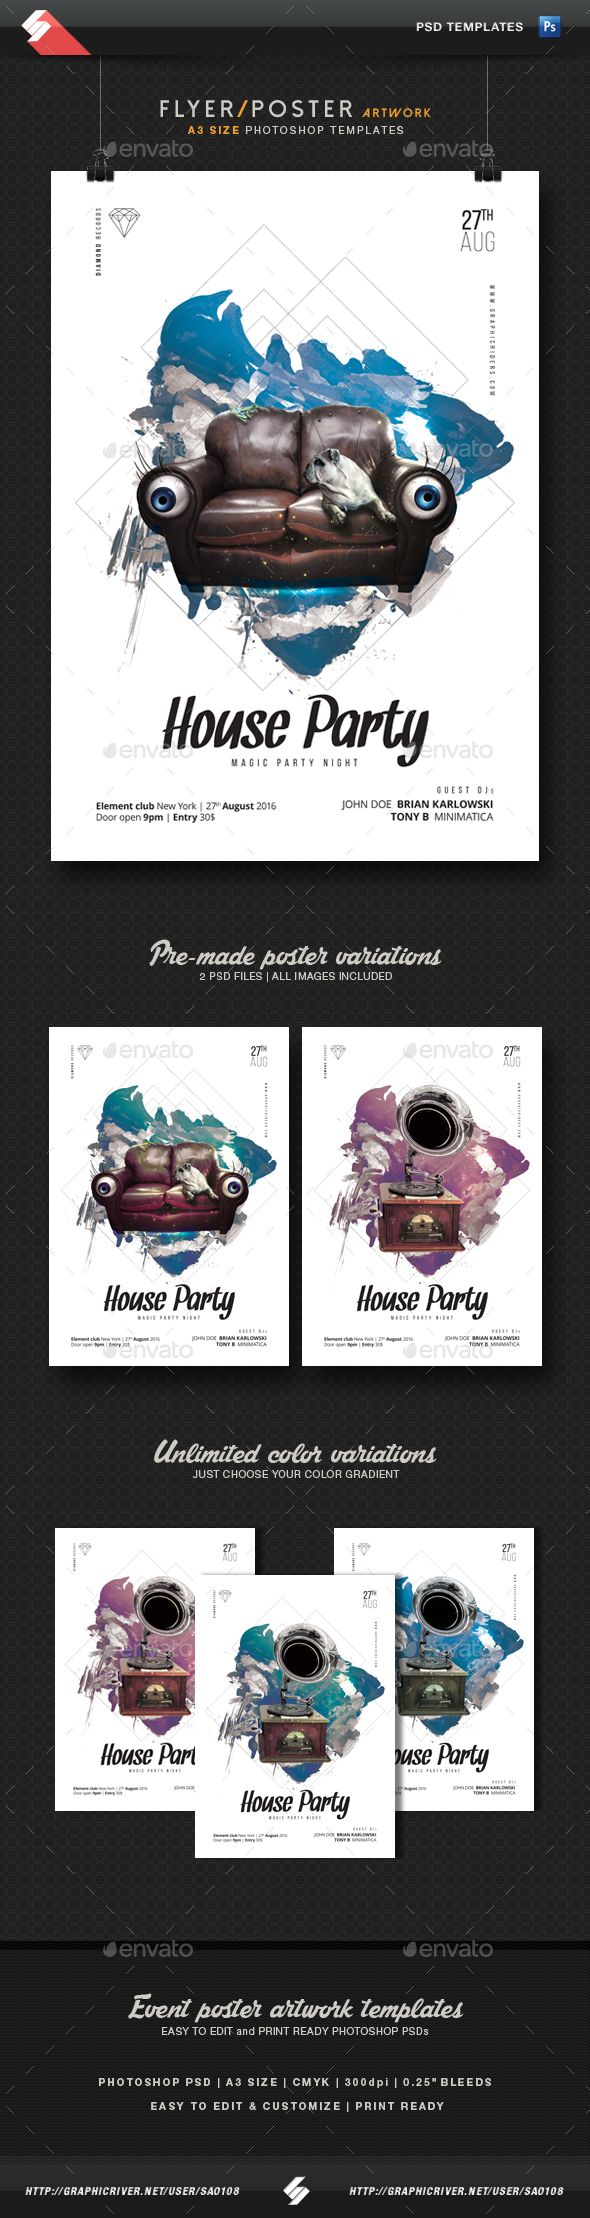 House Party - Minimal Flyer / Poster Templates A3 | Minimal ...